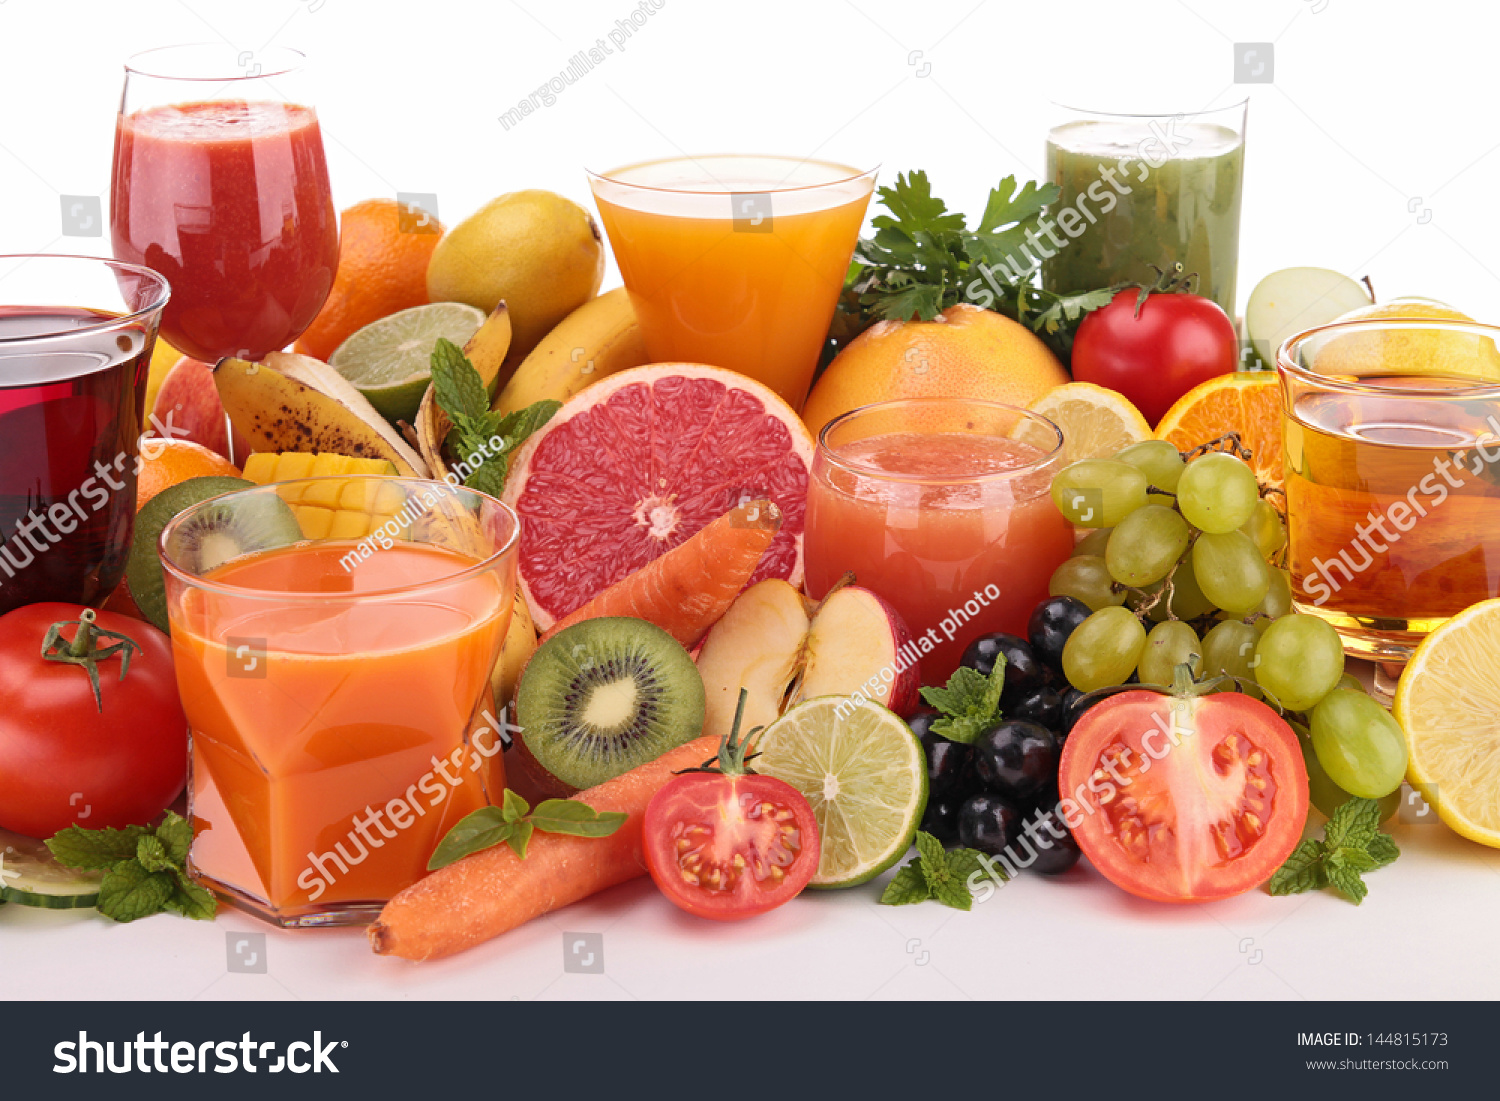 healthy fruit juice is a tomato a fruit or a vegetable